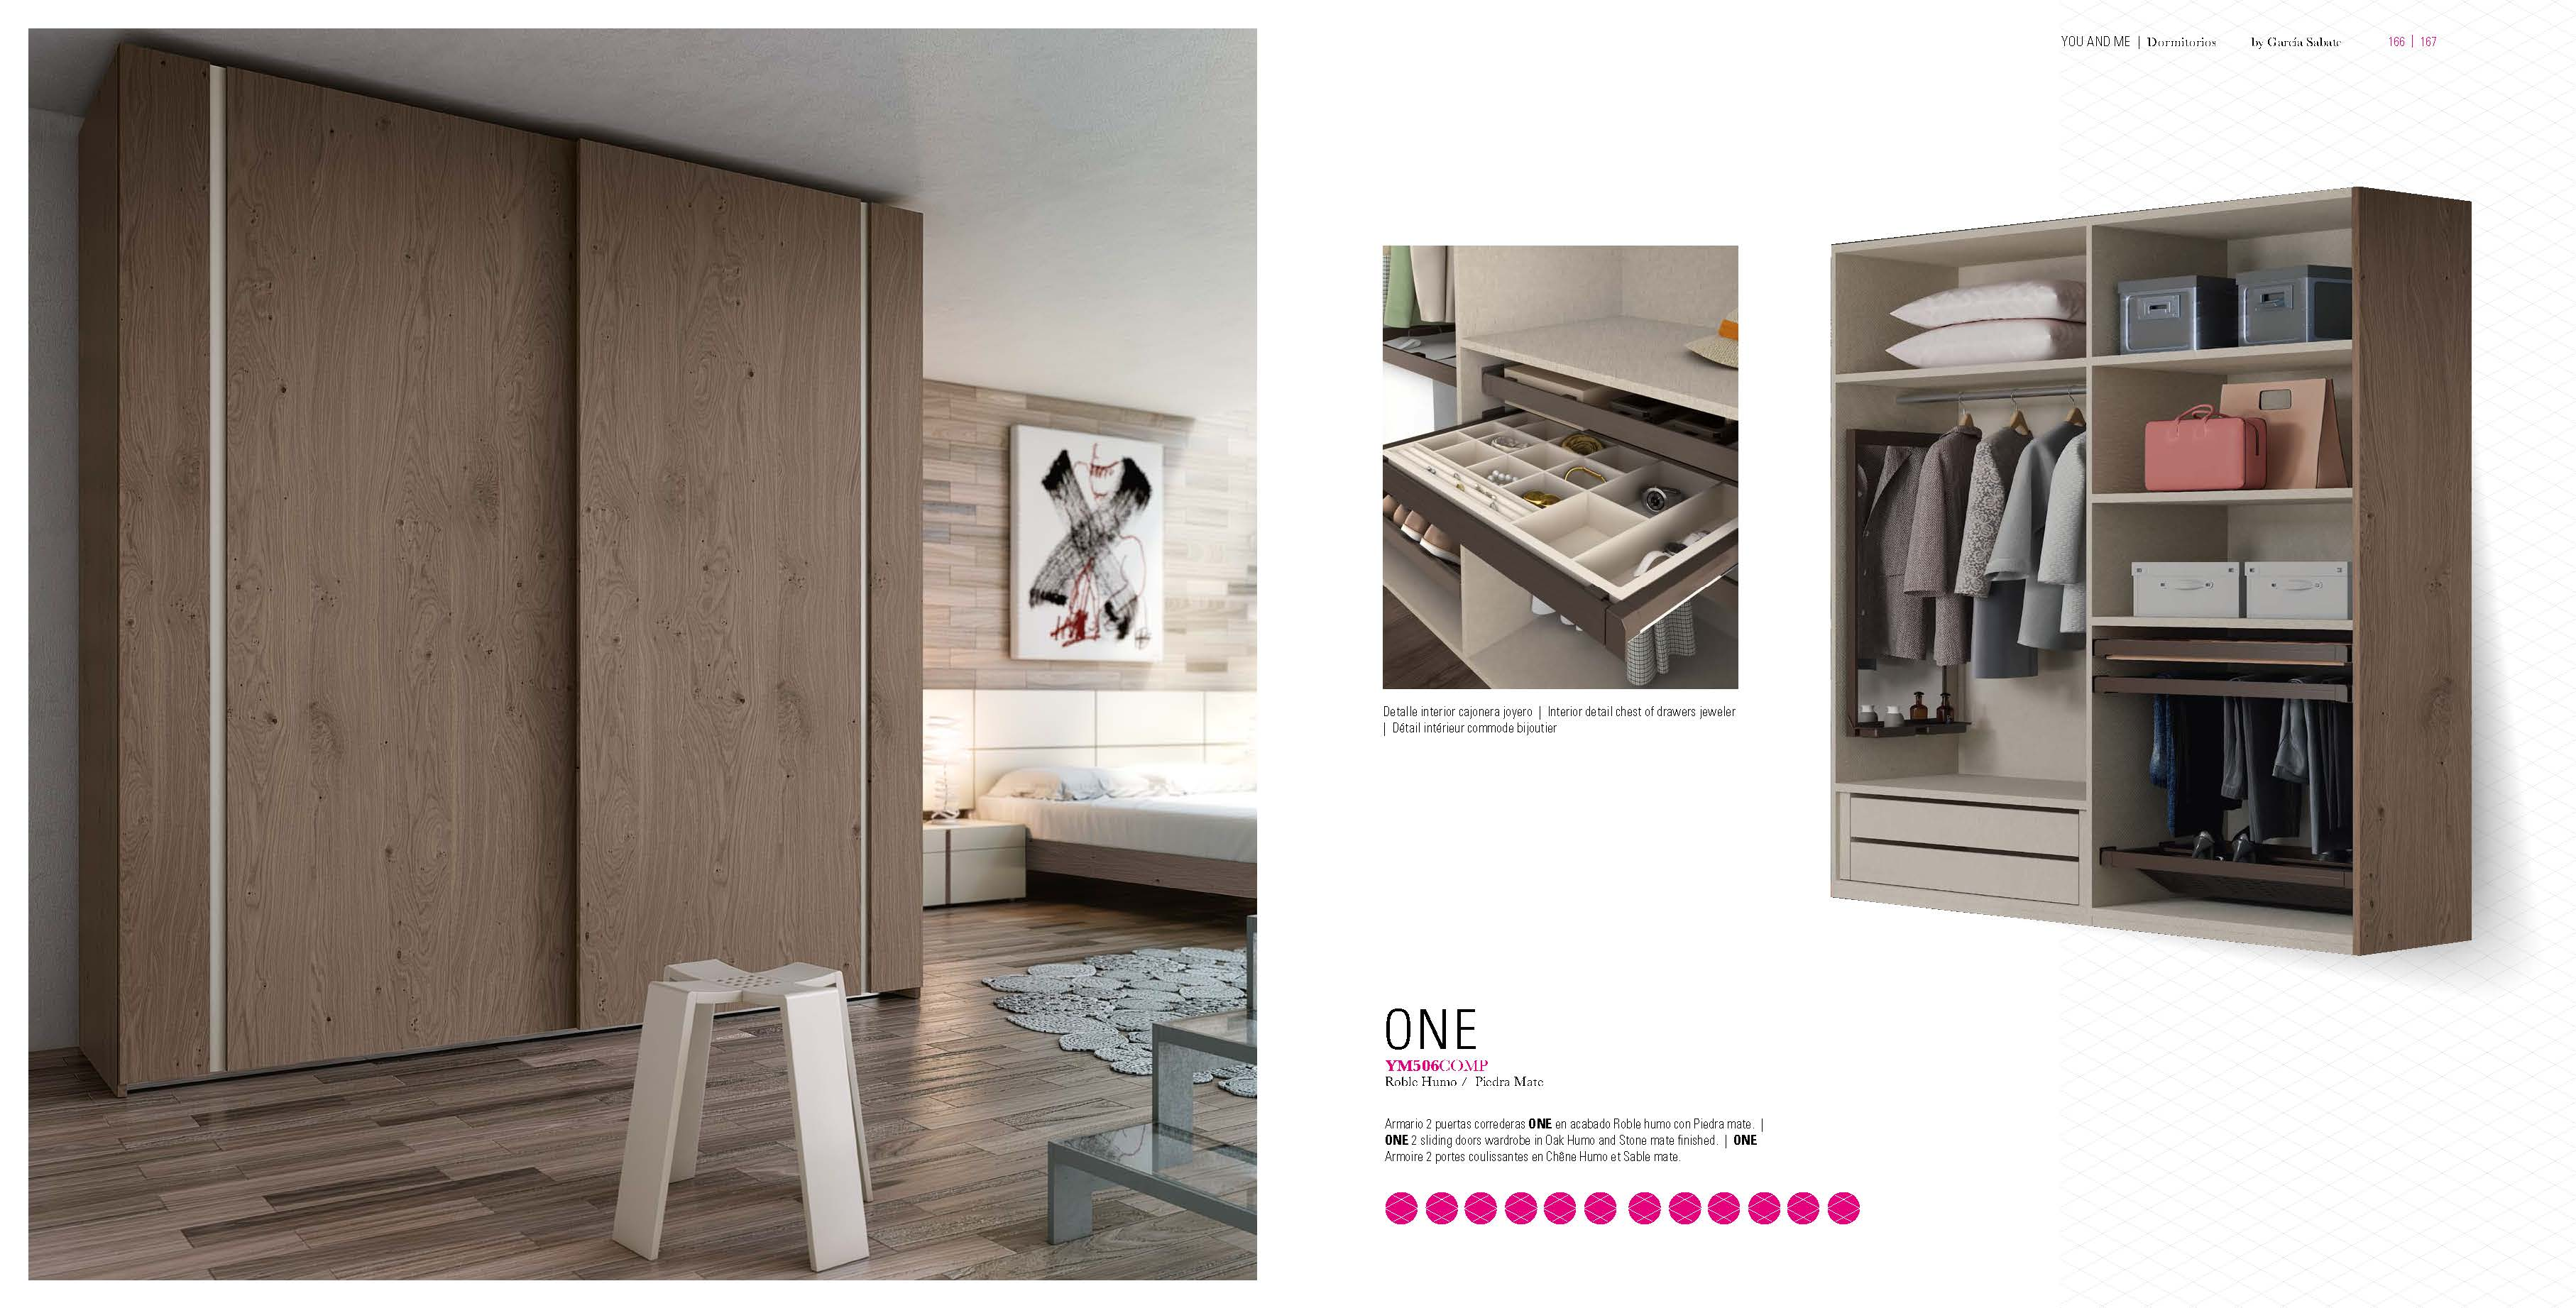 Brands Garcia Sabate, Modern Bedroom Spain YM506 Sliding Doors Wardrobes